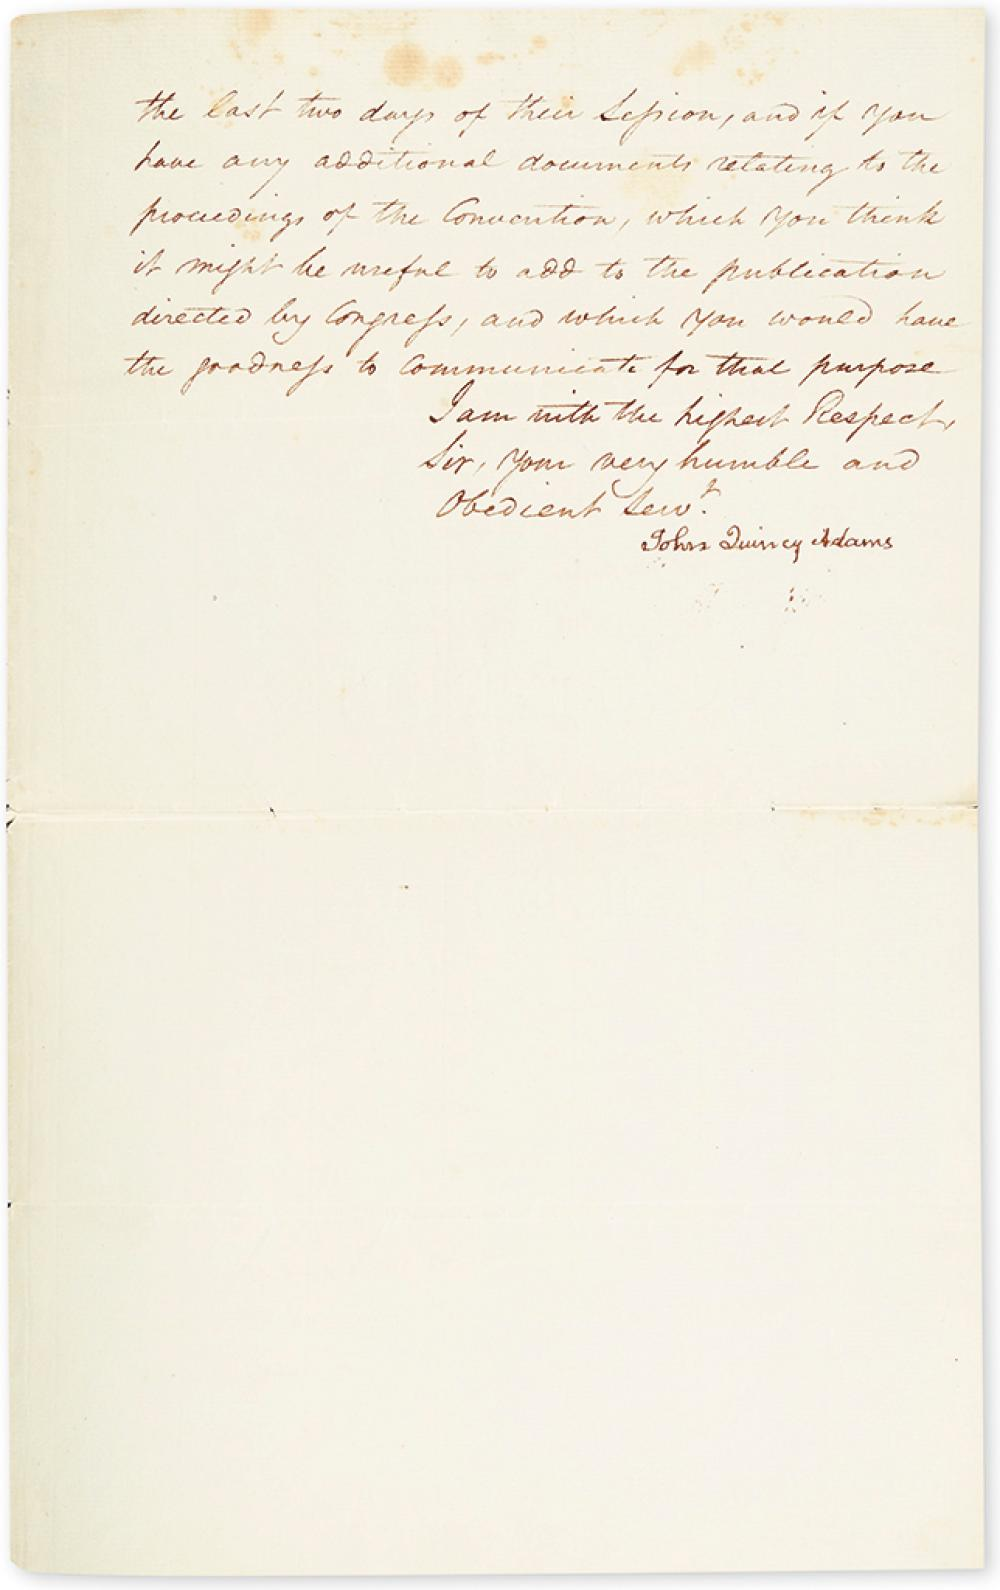 ADAMS, JOHN QUINCY. Letter Signed, as Secretary of State, to President James Madison, requesting documents to complete George Washingto